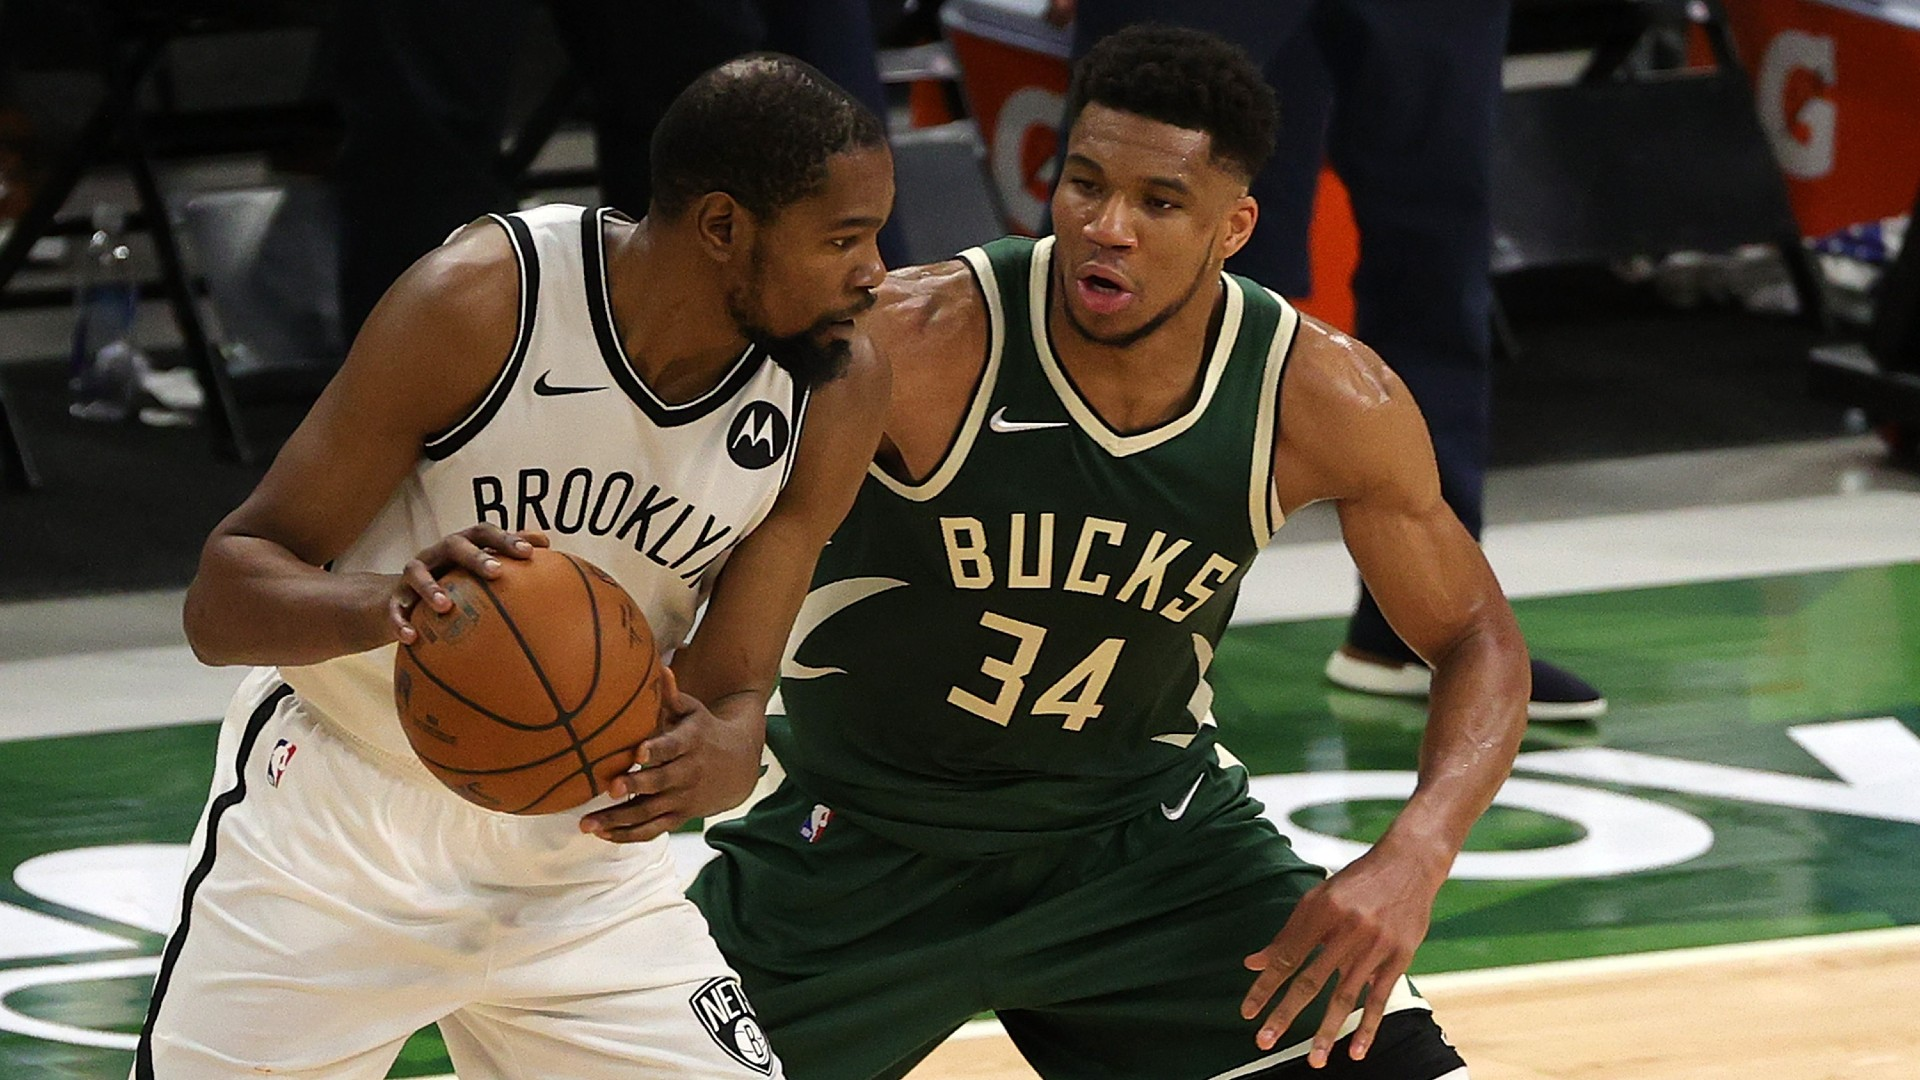 Bucks vs. Nets Predictions, Picks, Schedule & More to Know for the 2021 NBA Playoff Series